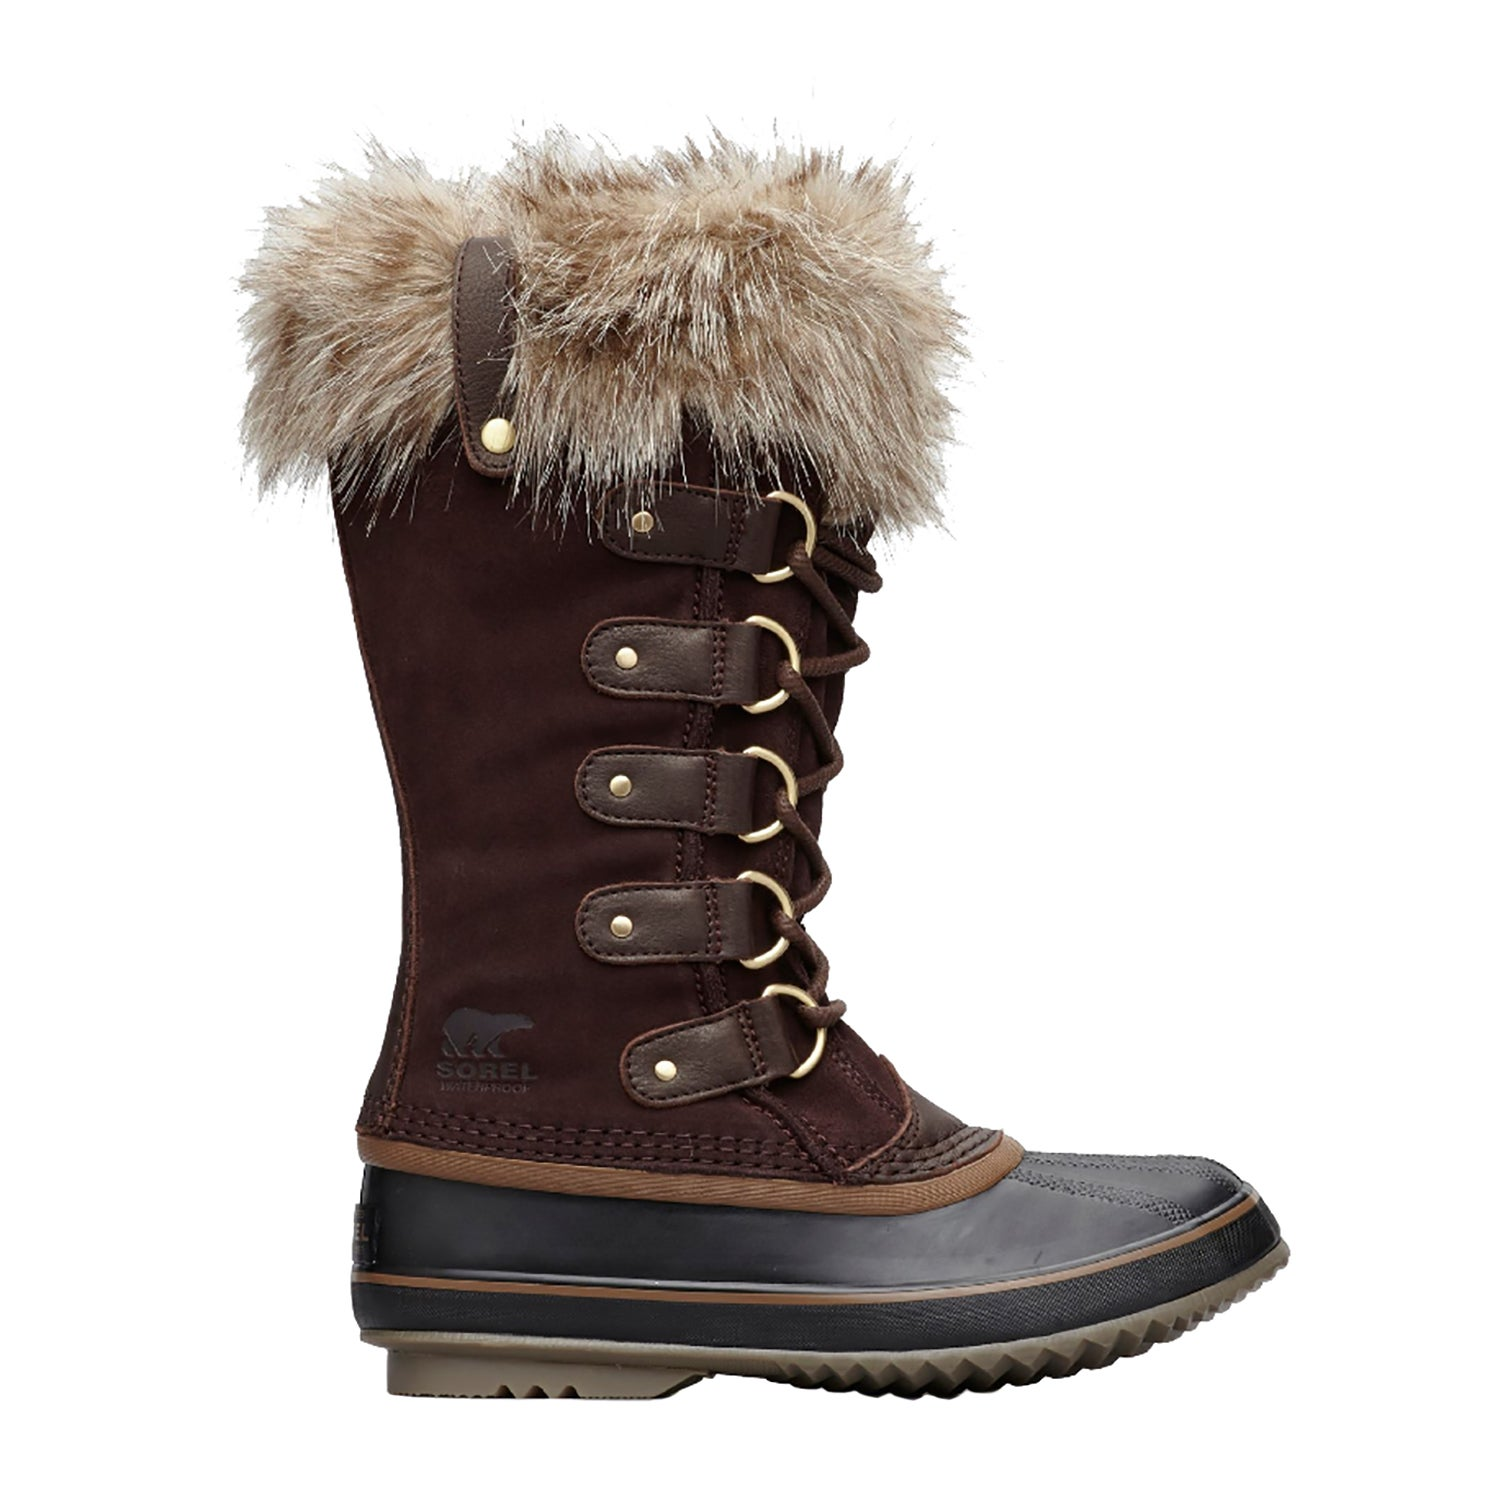 3da53a5d6 Sorel Joan Of Arctic Faux Fur Ladies Boots available from Blackleaf